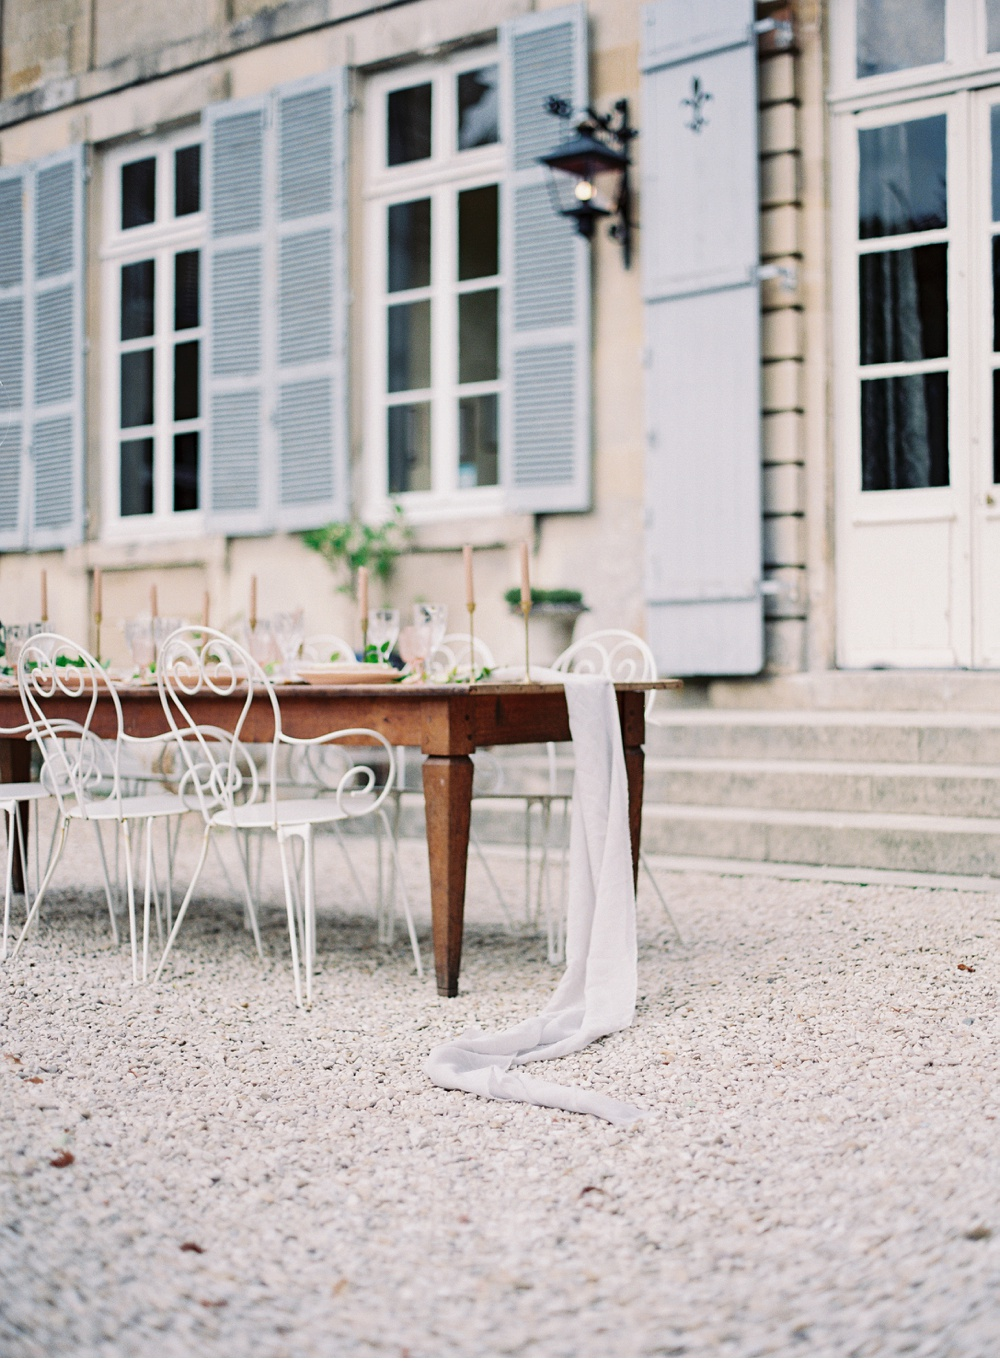 Destination_Wedding_France_©MadalinaSheldon_0004.jpg